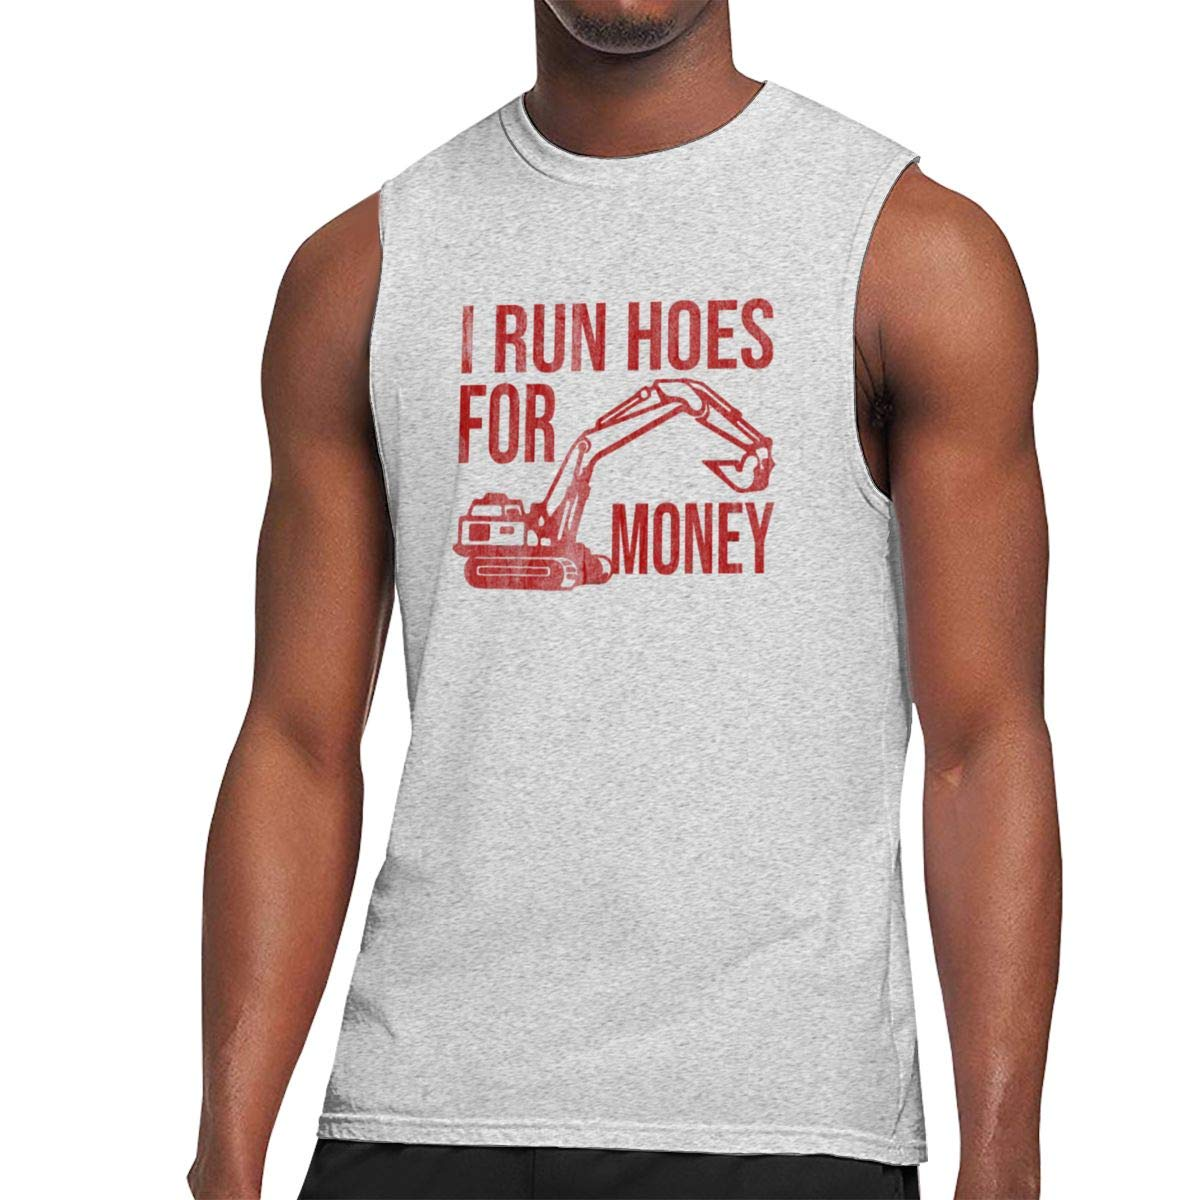 I Run Hoes for Money Sleeveless Tanks Top Shirt Fit Mens